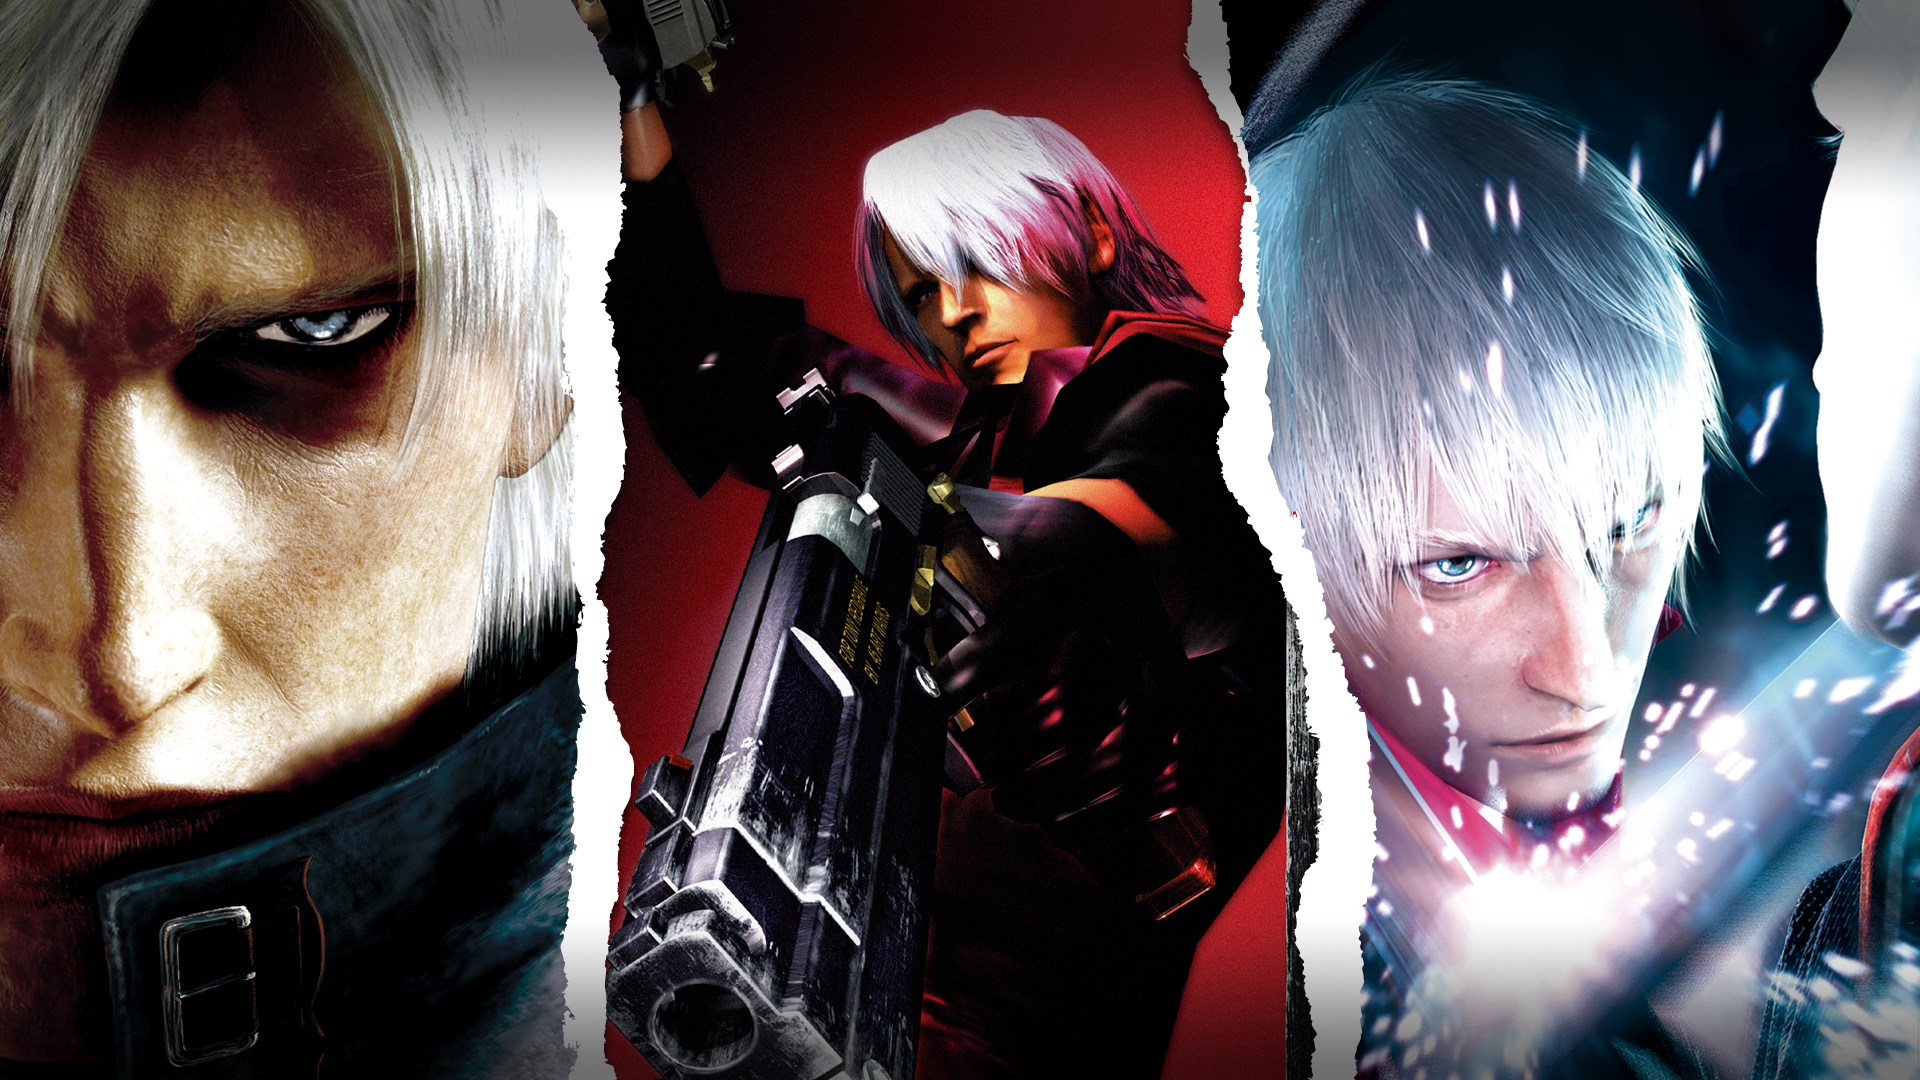 Devil May Cry Game Poster